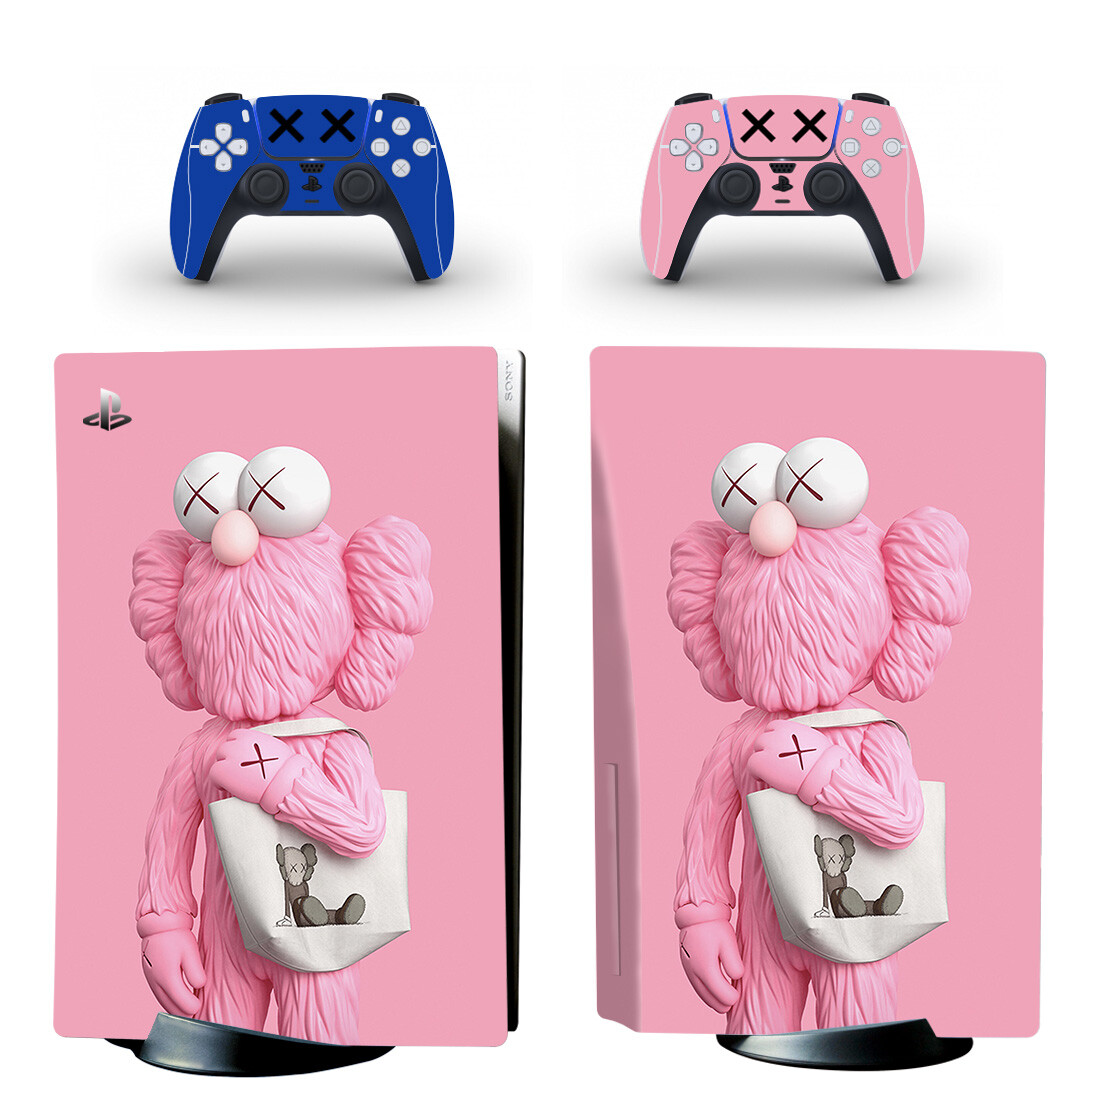 Kaws Pink Skin Sticker For PlayStation 5 And Controllers